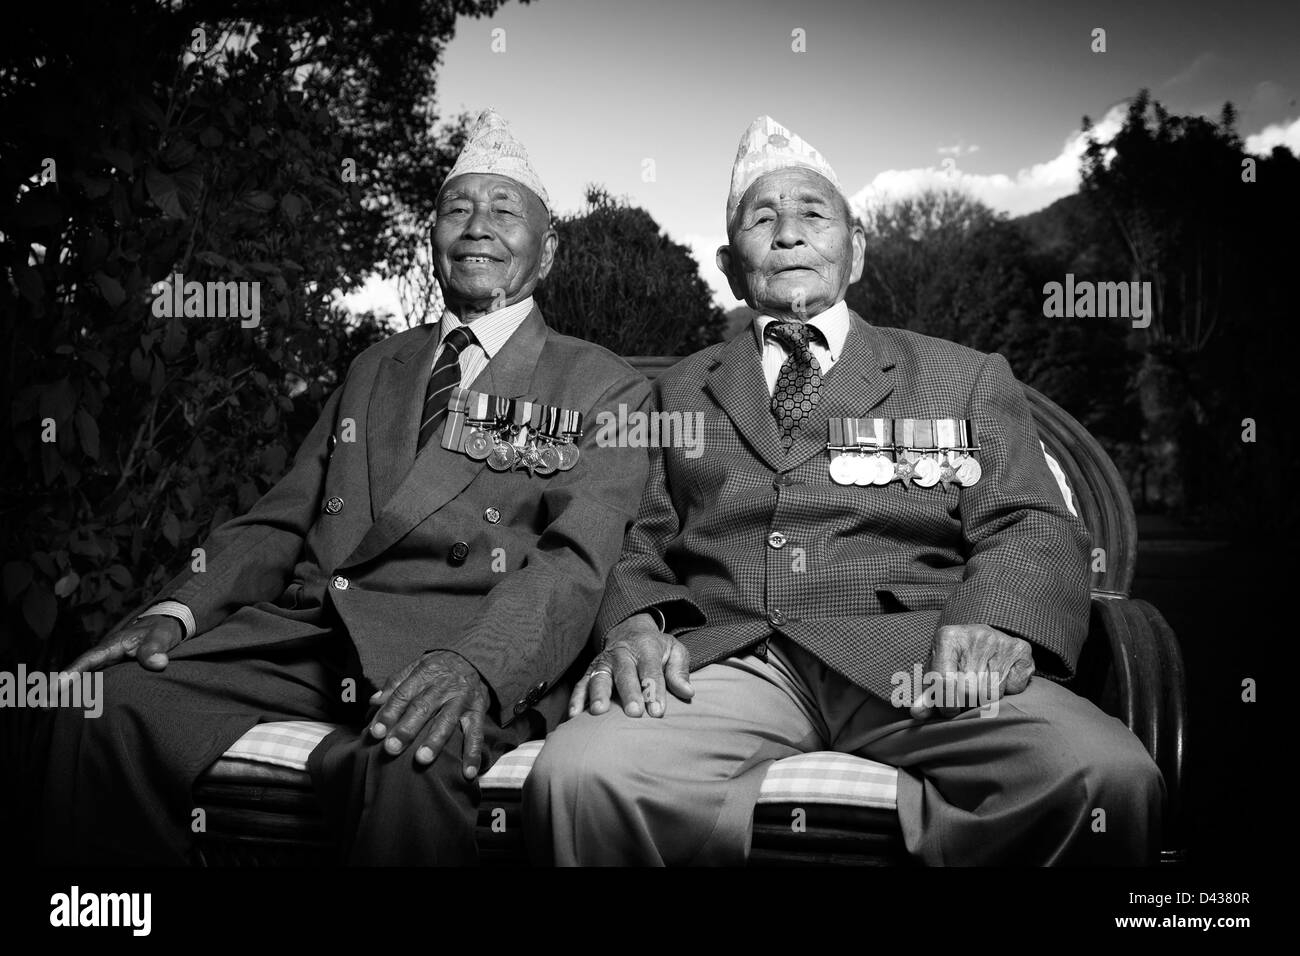 Two Gurkha brothers-in-Arms who served for the Brigade of Gurkhas in World War 2 - Stock Image